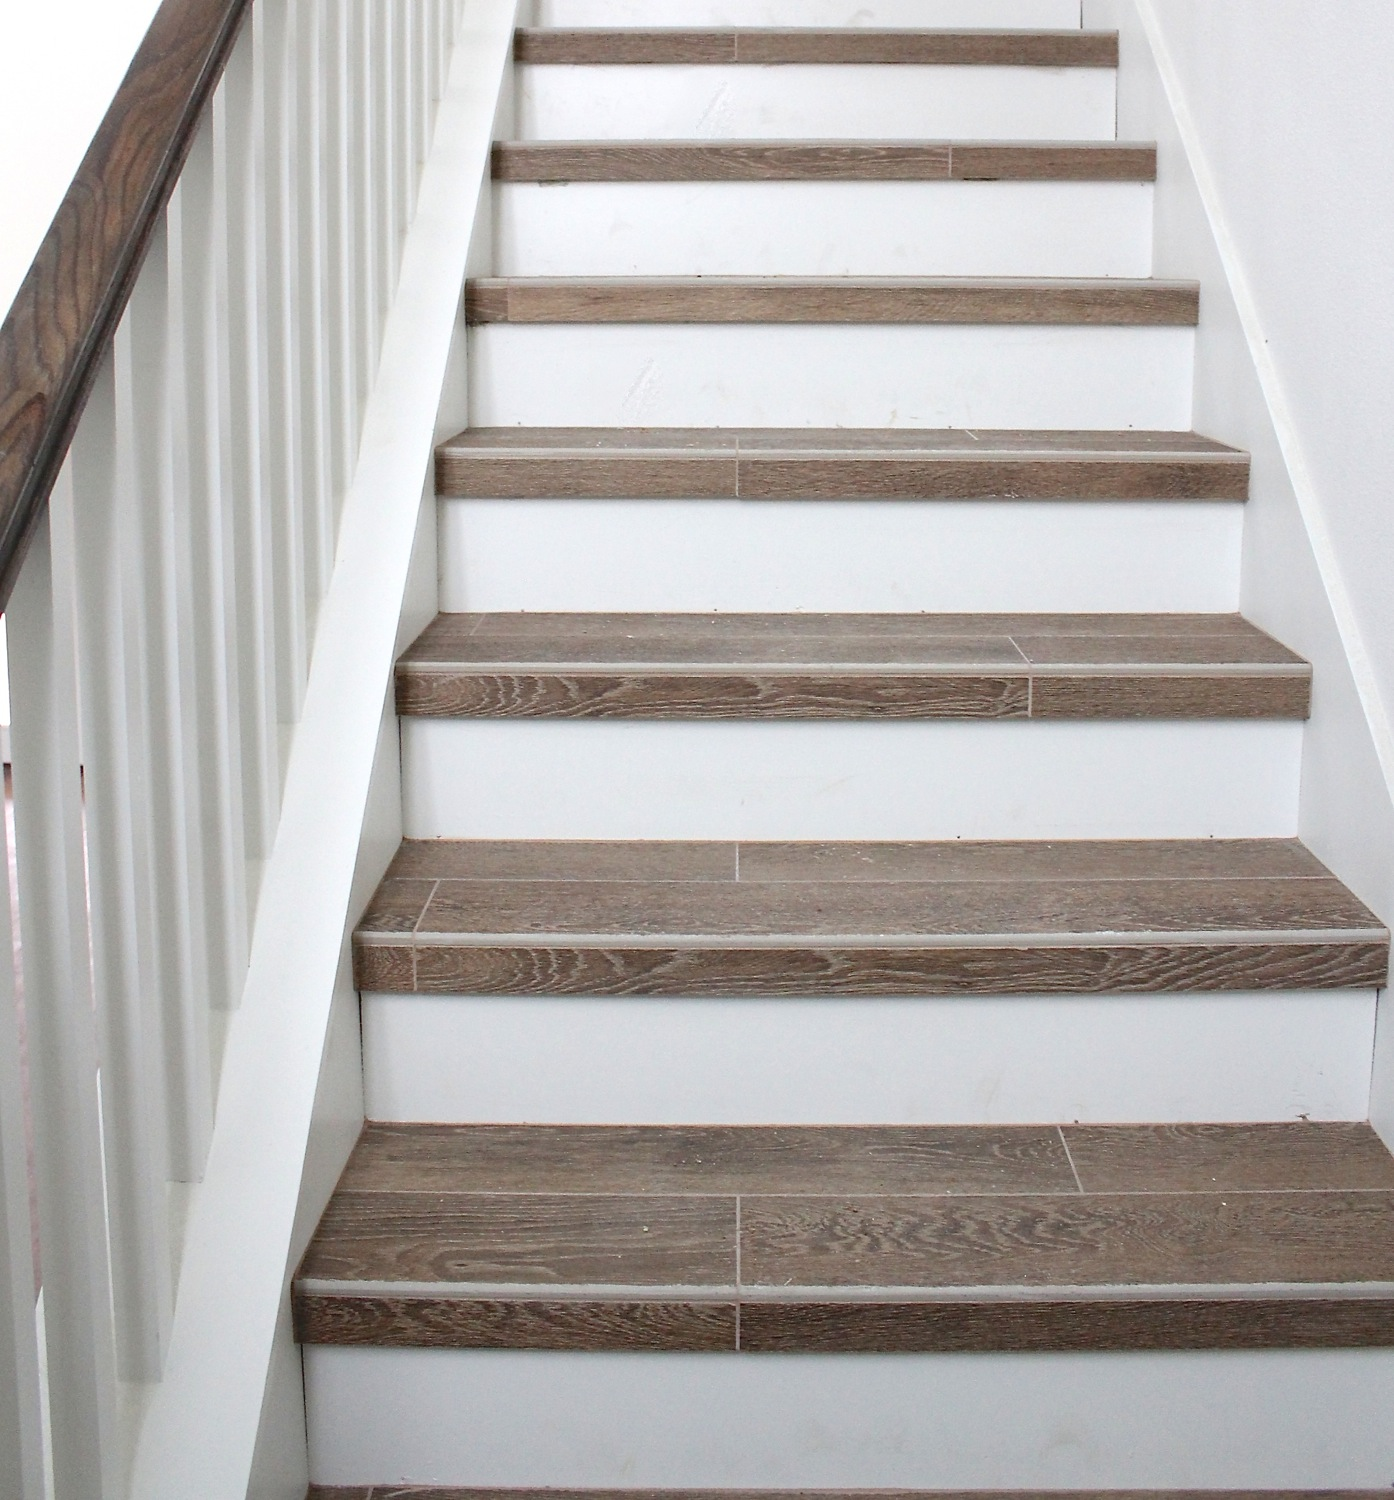 Building A New Home Tile Flooring Countertops And | Wood Look Stair Treads